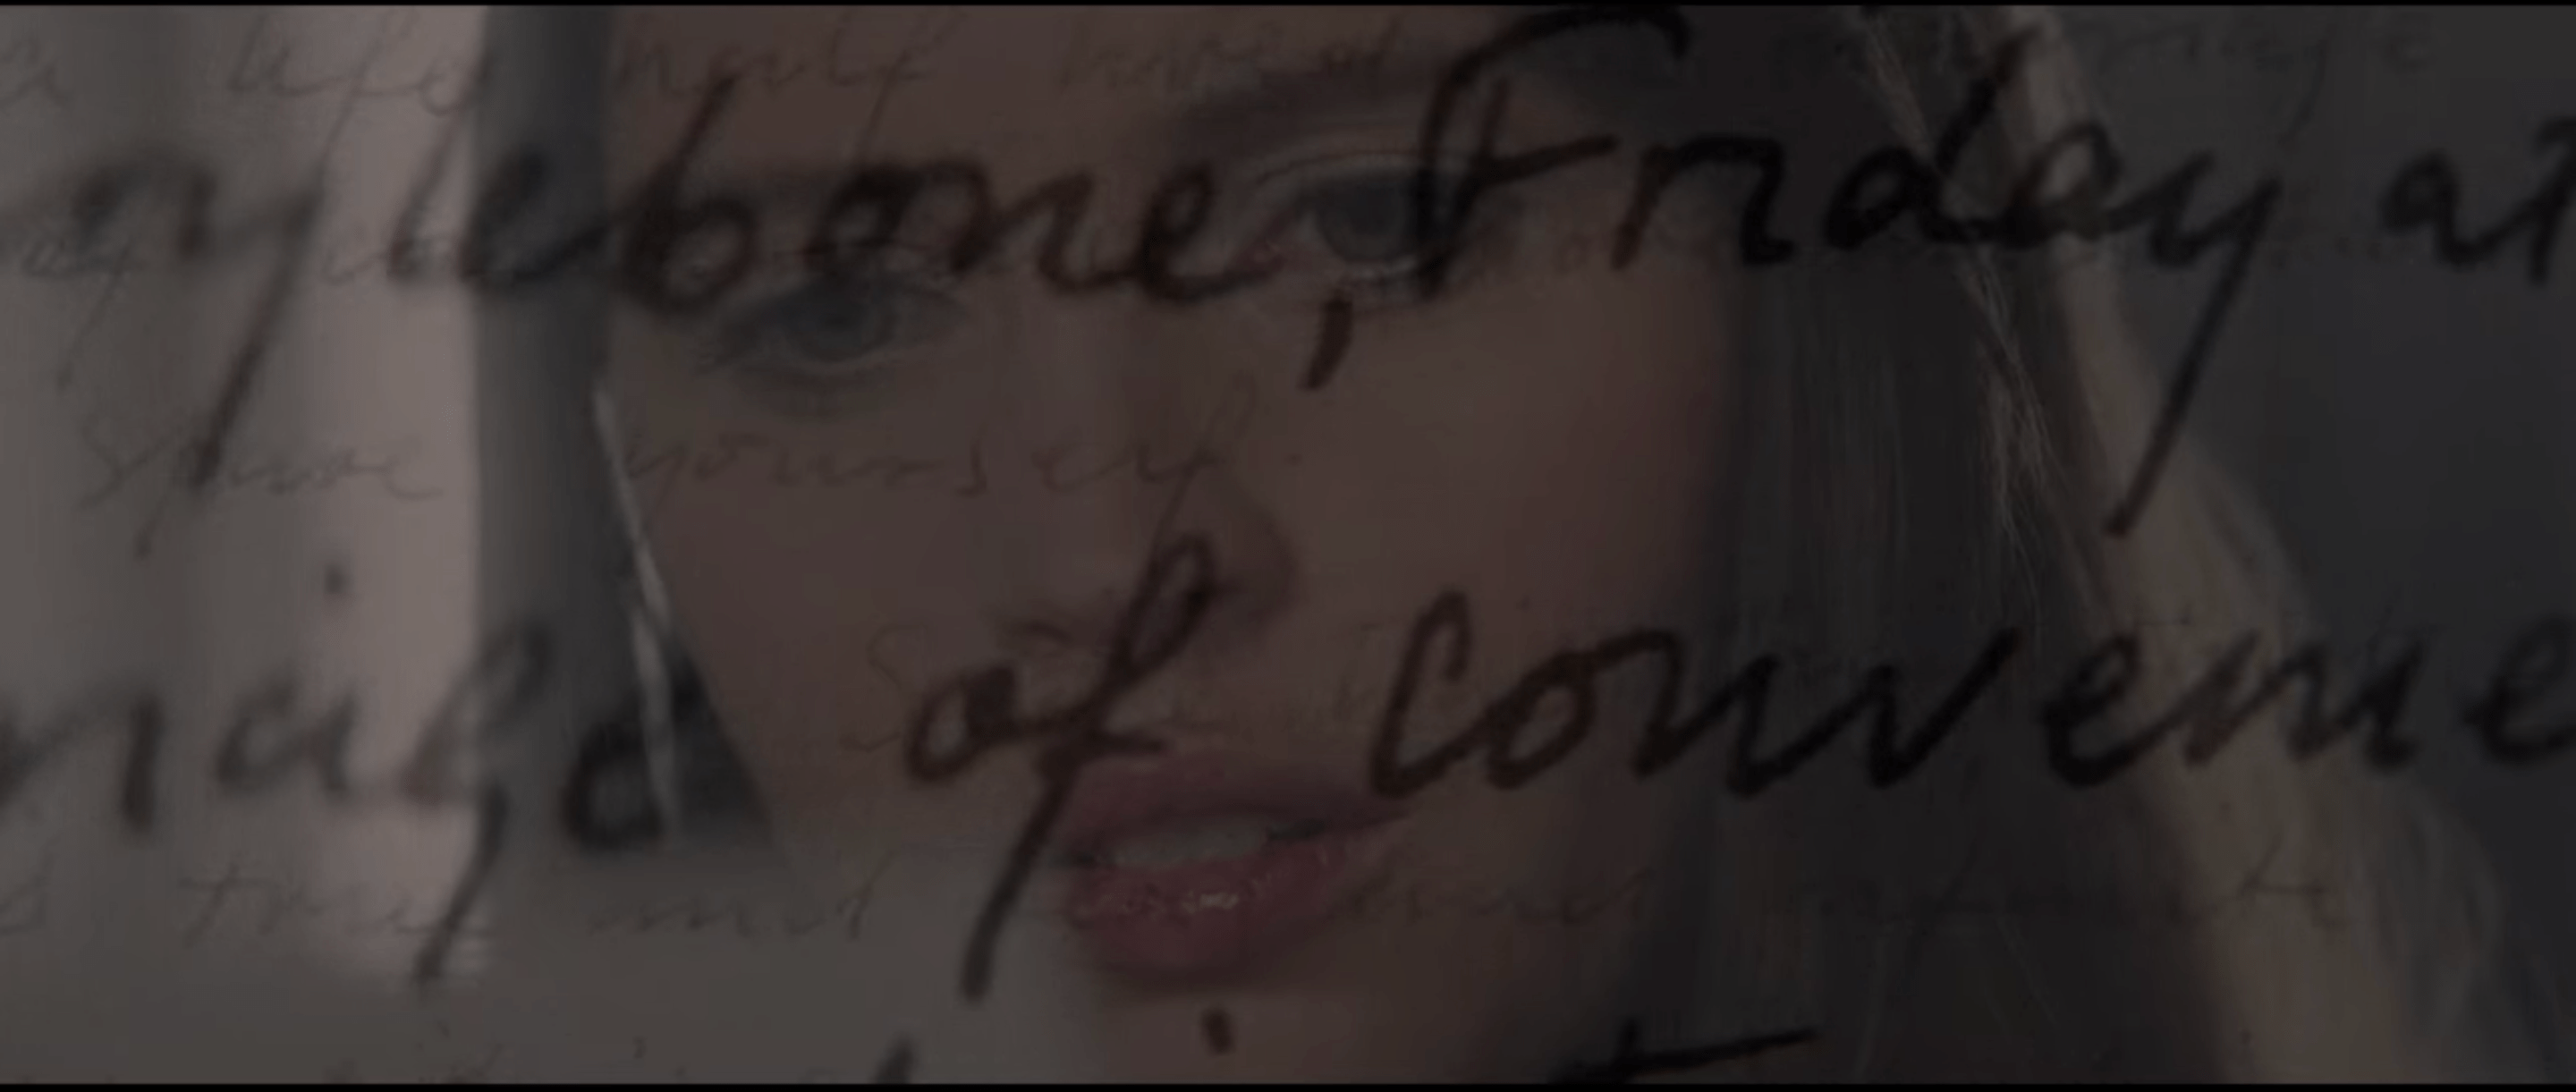 Ellie's face with handwriting from one of the of love letters superimposed over her face.